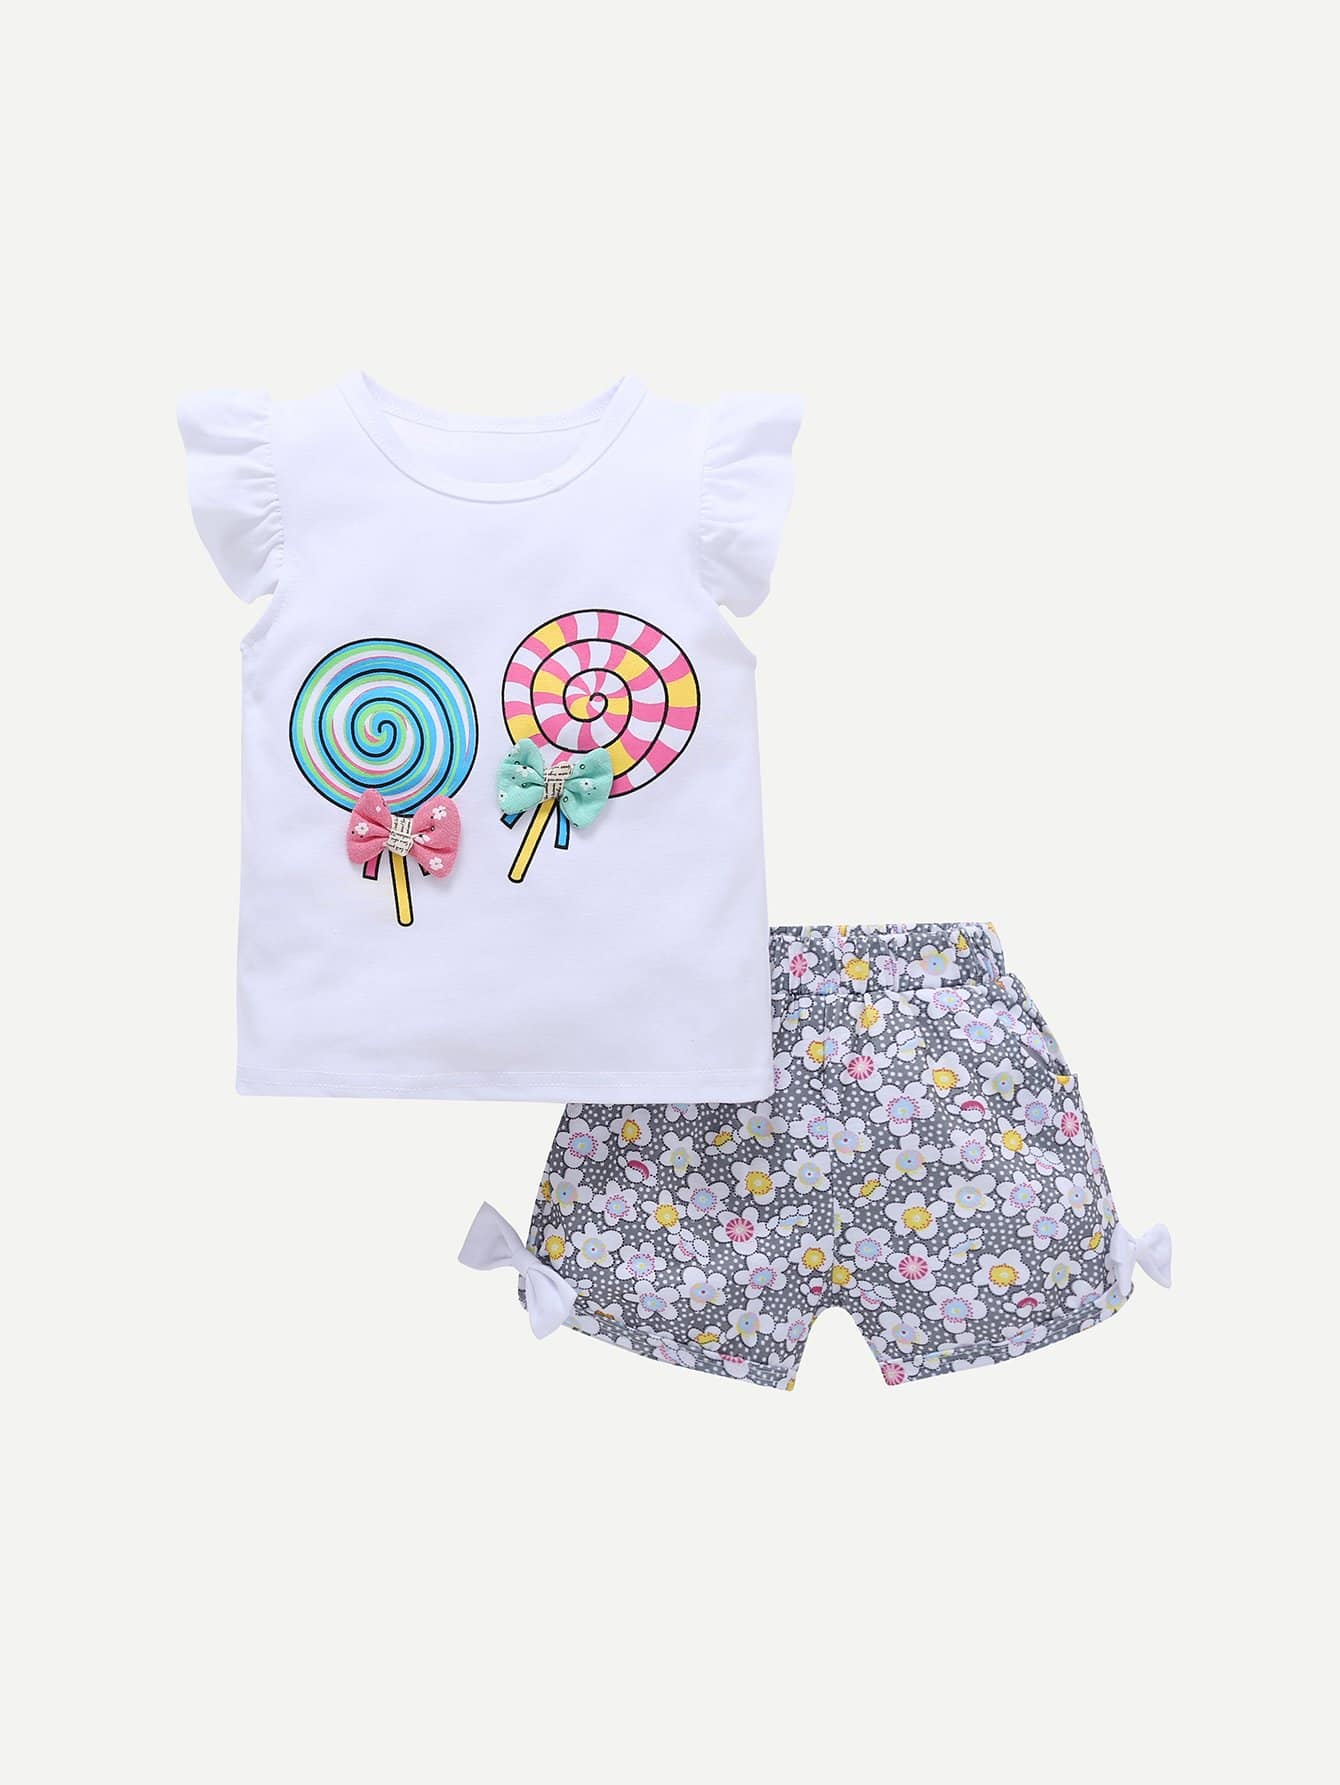 Girls Frill Lollipop Print Tee With Calico Print Shorts lj41 08420a lj41 08421a good working tested